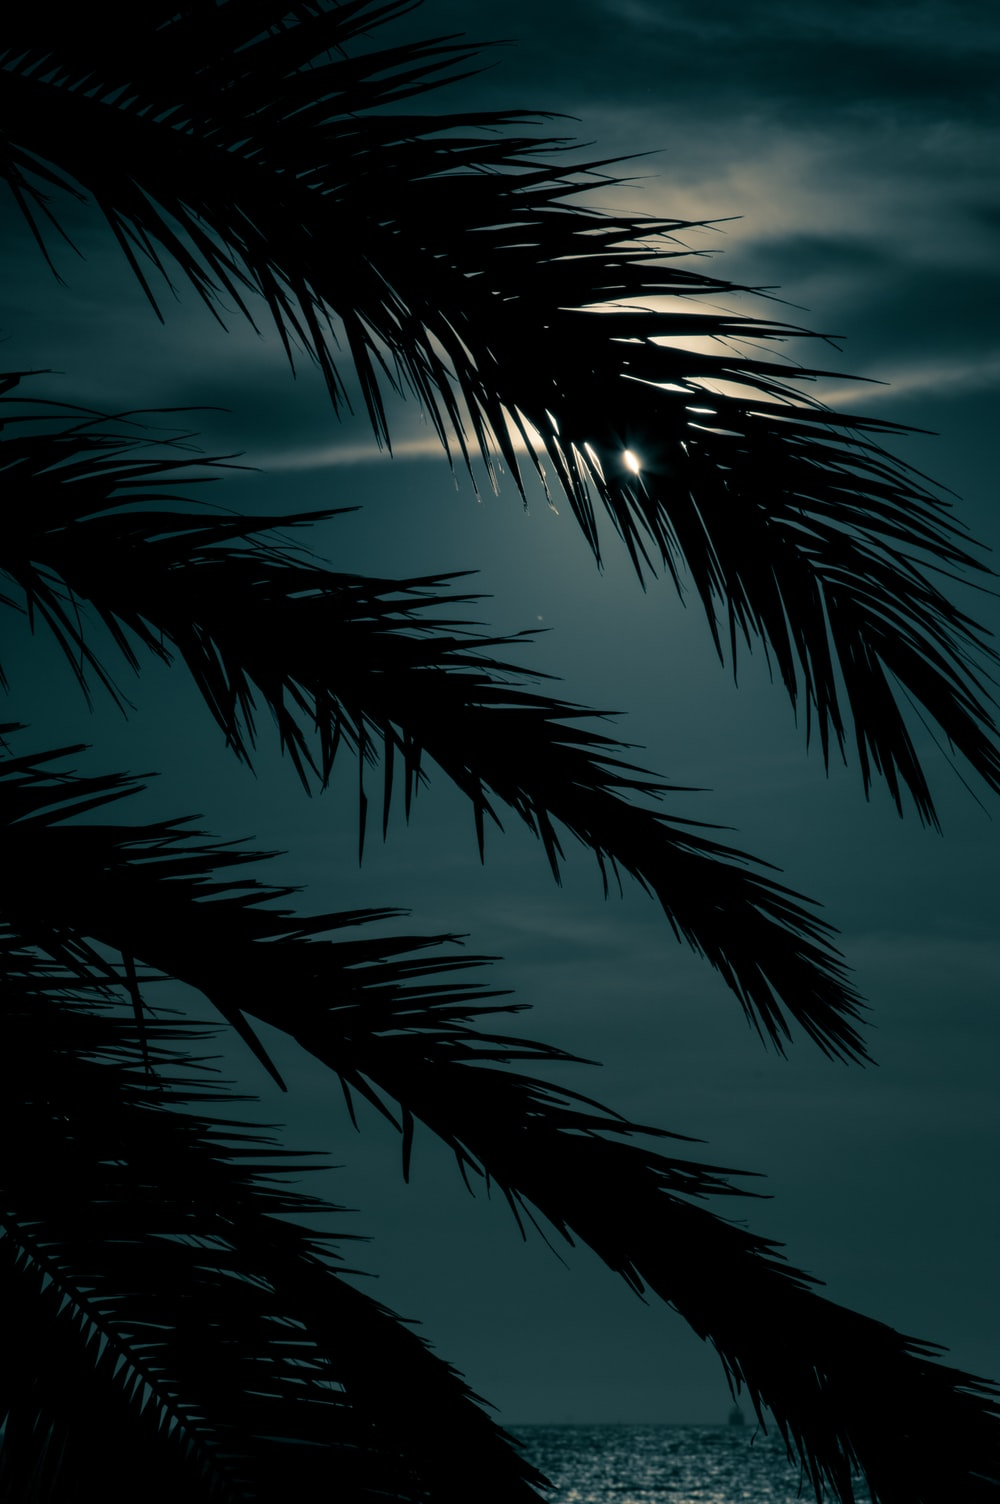 silhouette of palm tree at night time